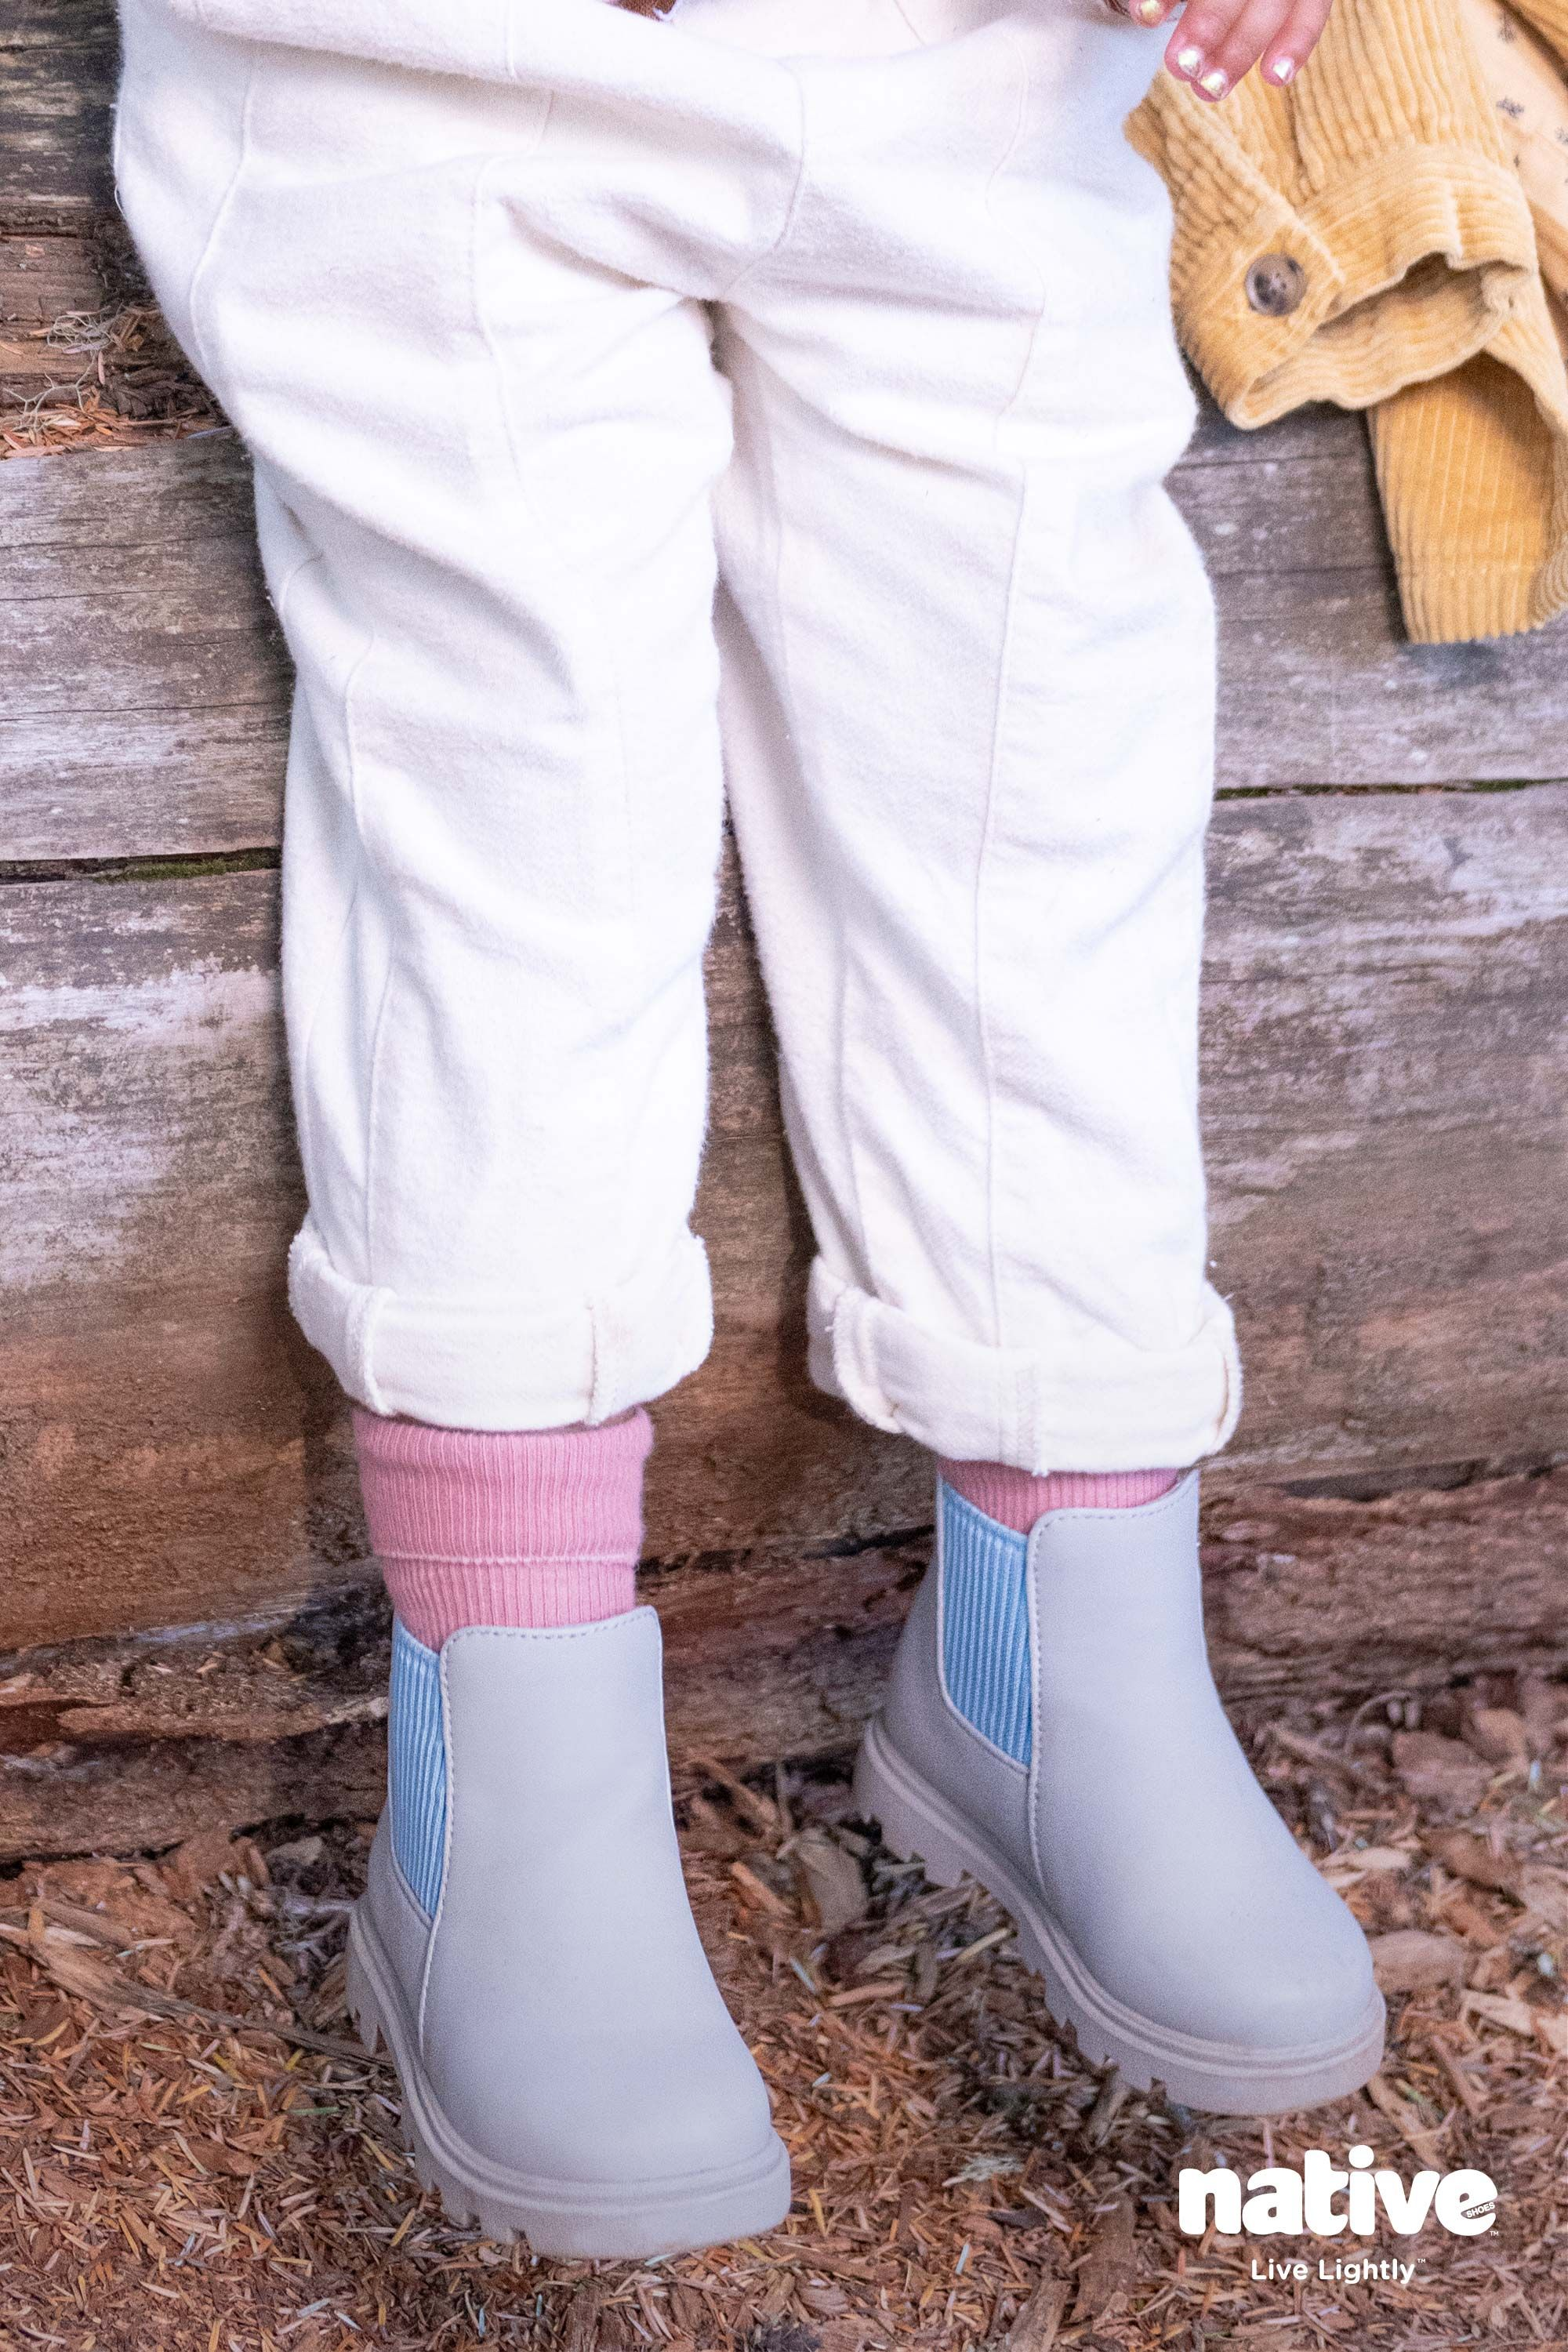 Native Shoes   Boots, Teenager outfits